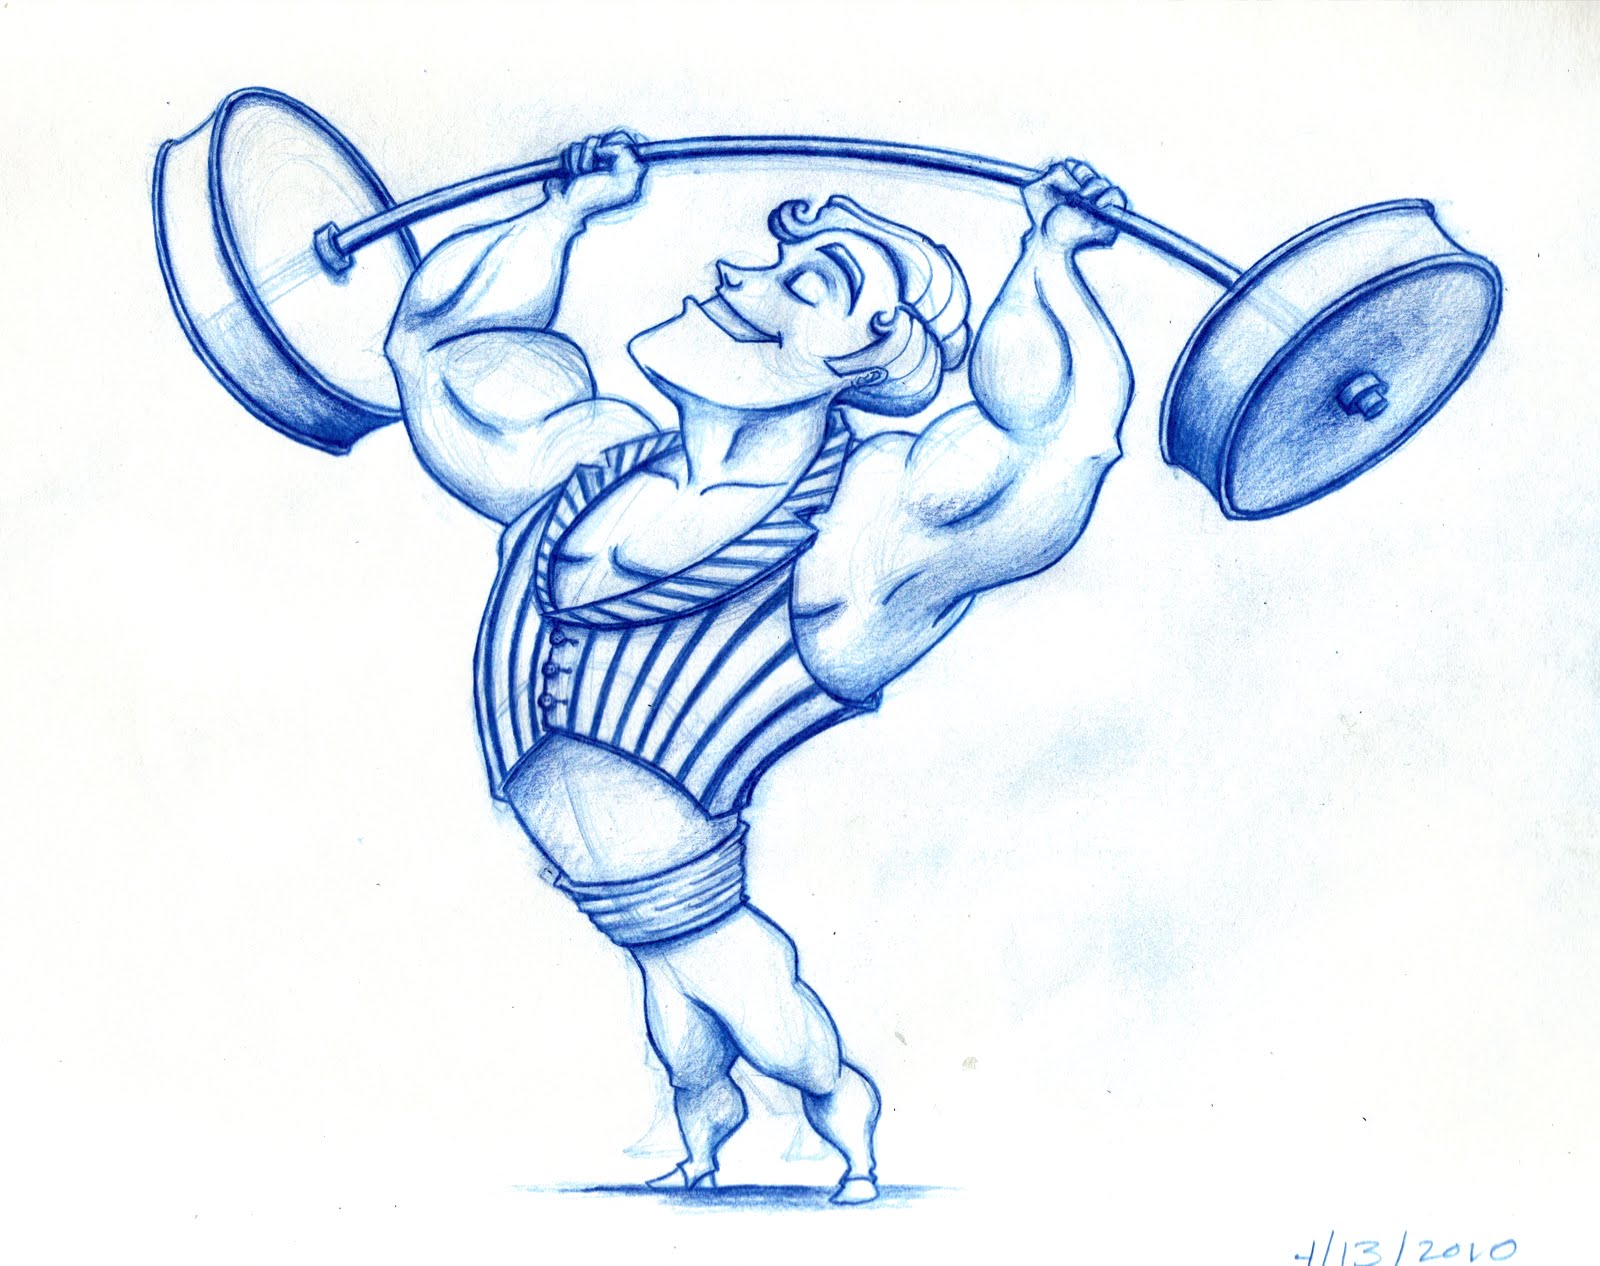 Mr. Strongman presents with some muscle imbalance. And the arch in his back may be due to poor core stability (or shoulder inflexibility). Better go to PT!